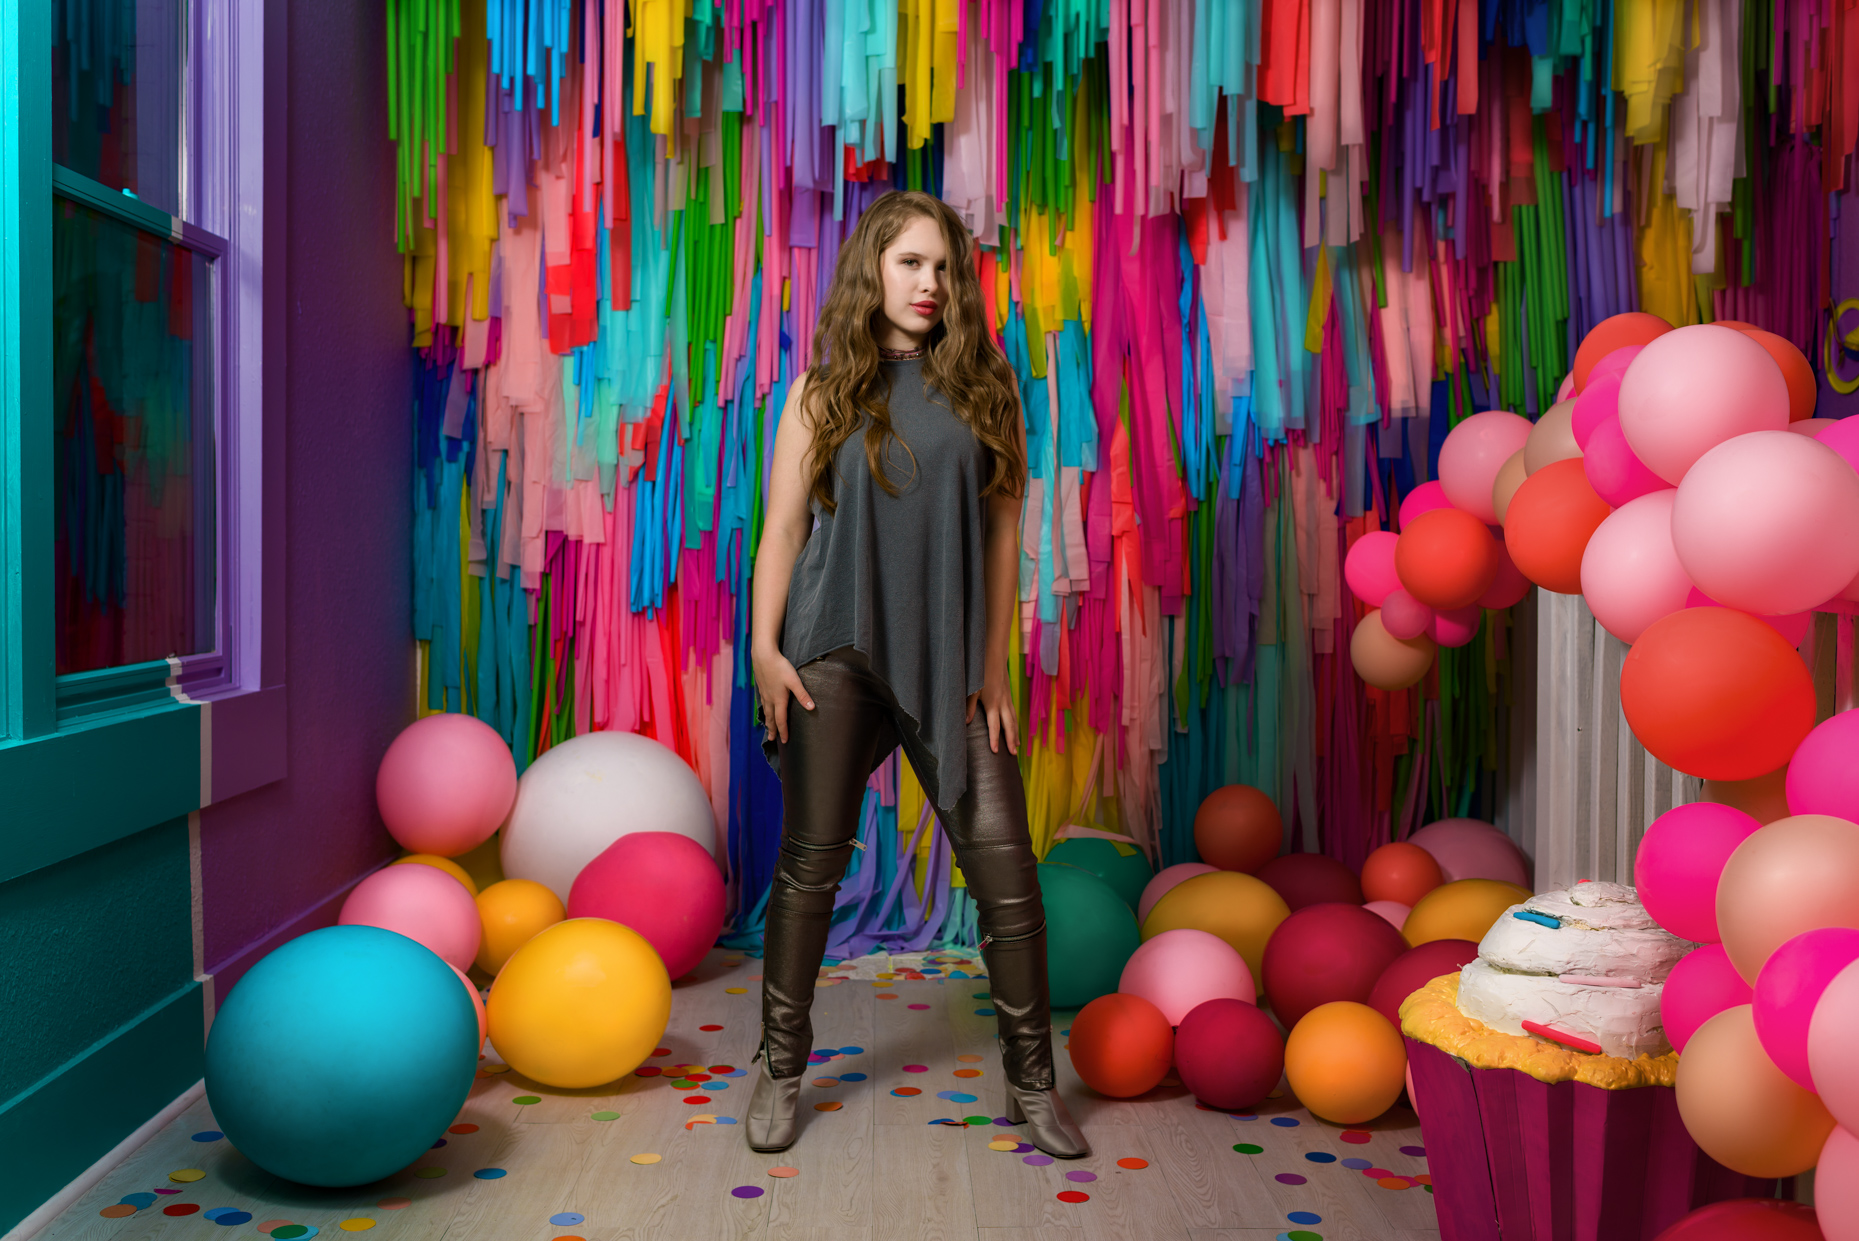 Austin-Editorial-Photographer-Madison-McWilliams-FOMO-Factory-Balloon-Room